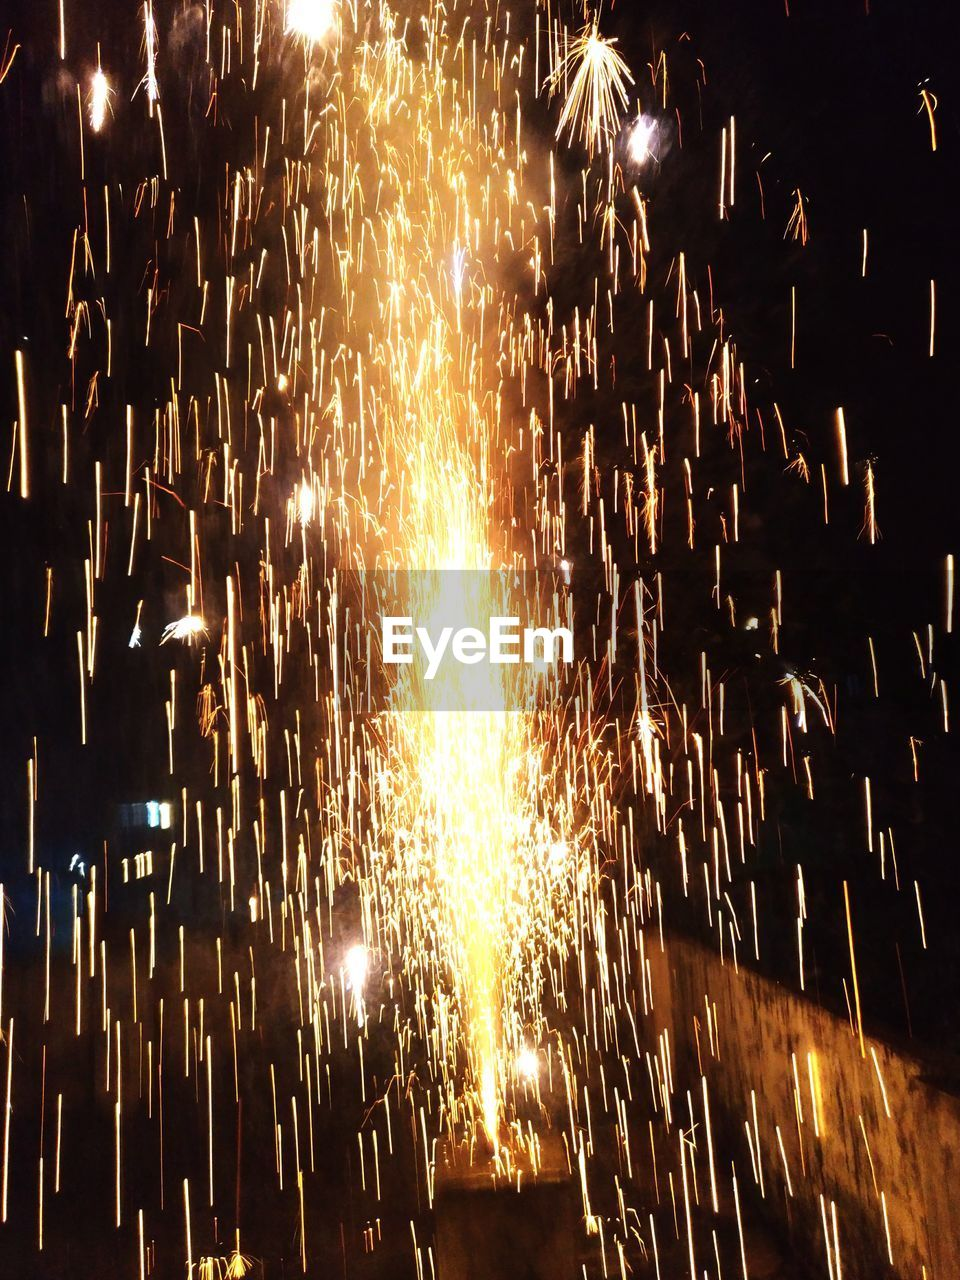 night, exploding, glowing, motion, firework display, celebration, blurred motion, firework - man made object, long exposure, burning, flame, illuminated, no people, arts culture and entertainment, outdoors